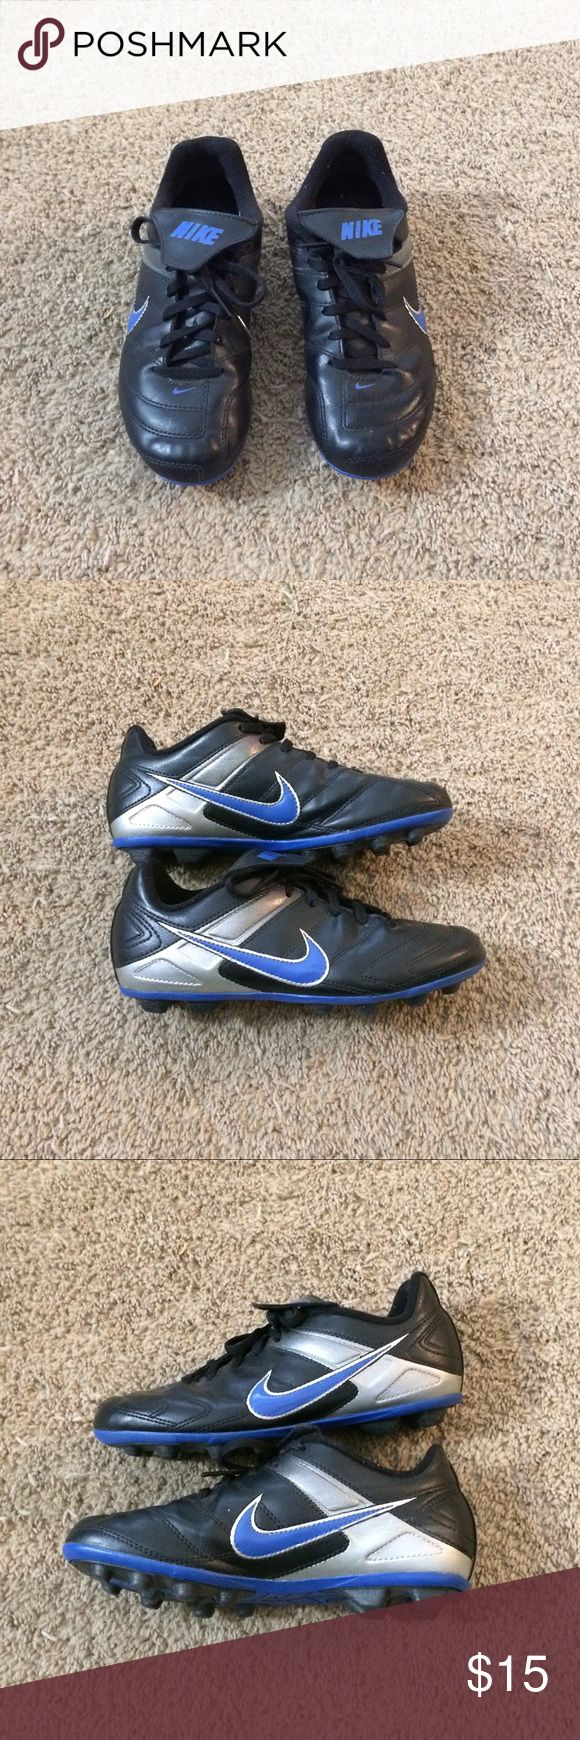 Nike Boys Versatract Soccer Cleats Shoes 3Y Nike Boys Versatract Soccer Cleats Shoes 359622-041  Type: Athletic Shoes  Style: Soccer Cleats    Brand: Nike  Size: 3 Y  Width: Medium (B,M)  Material: Man made Materials  Color: Black Blue  Conditions: Used. This shoes have normal sing of wear please see pictures.  Country of Manufacturer: Vietnam Nike Shoes Sneakers